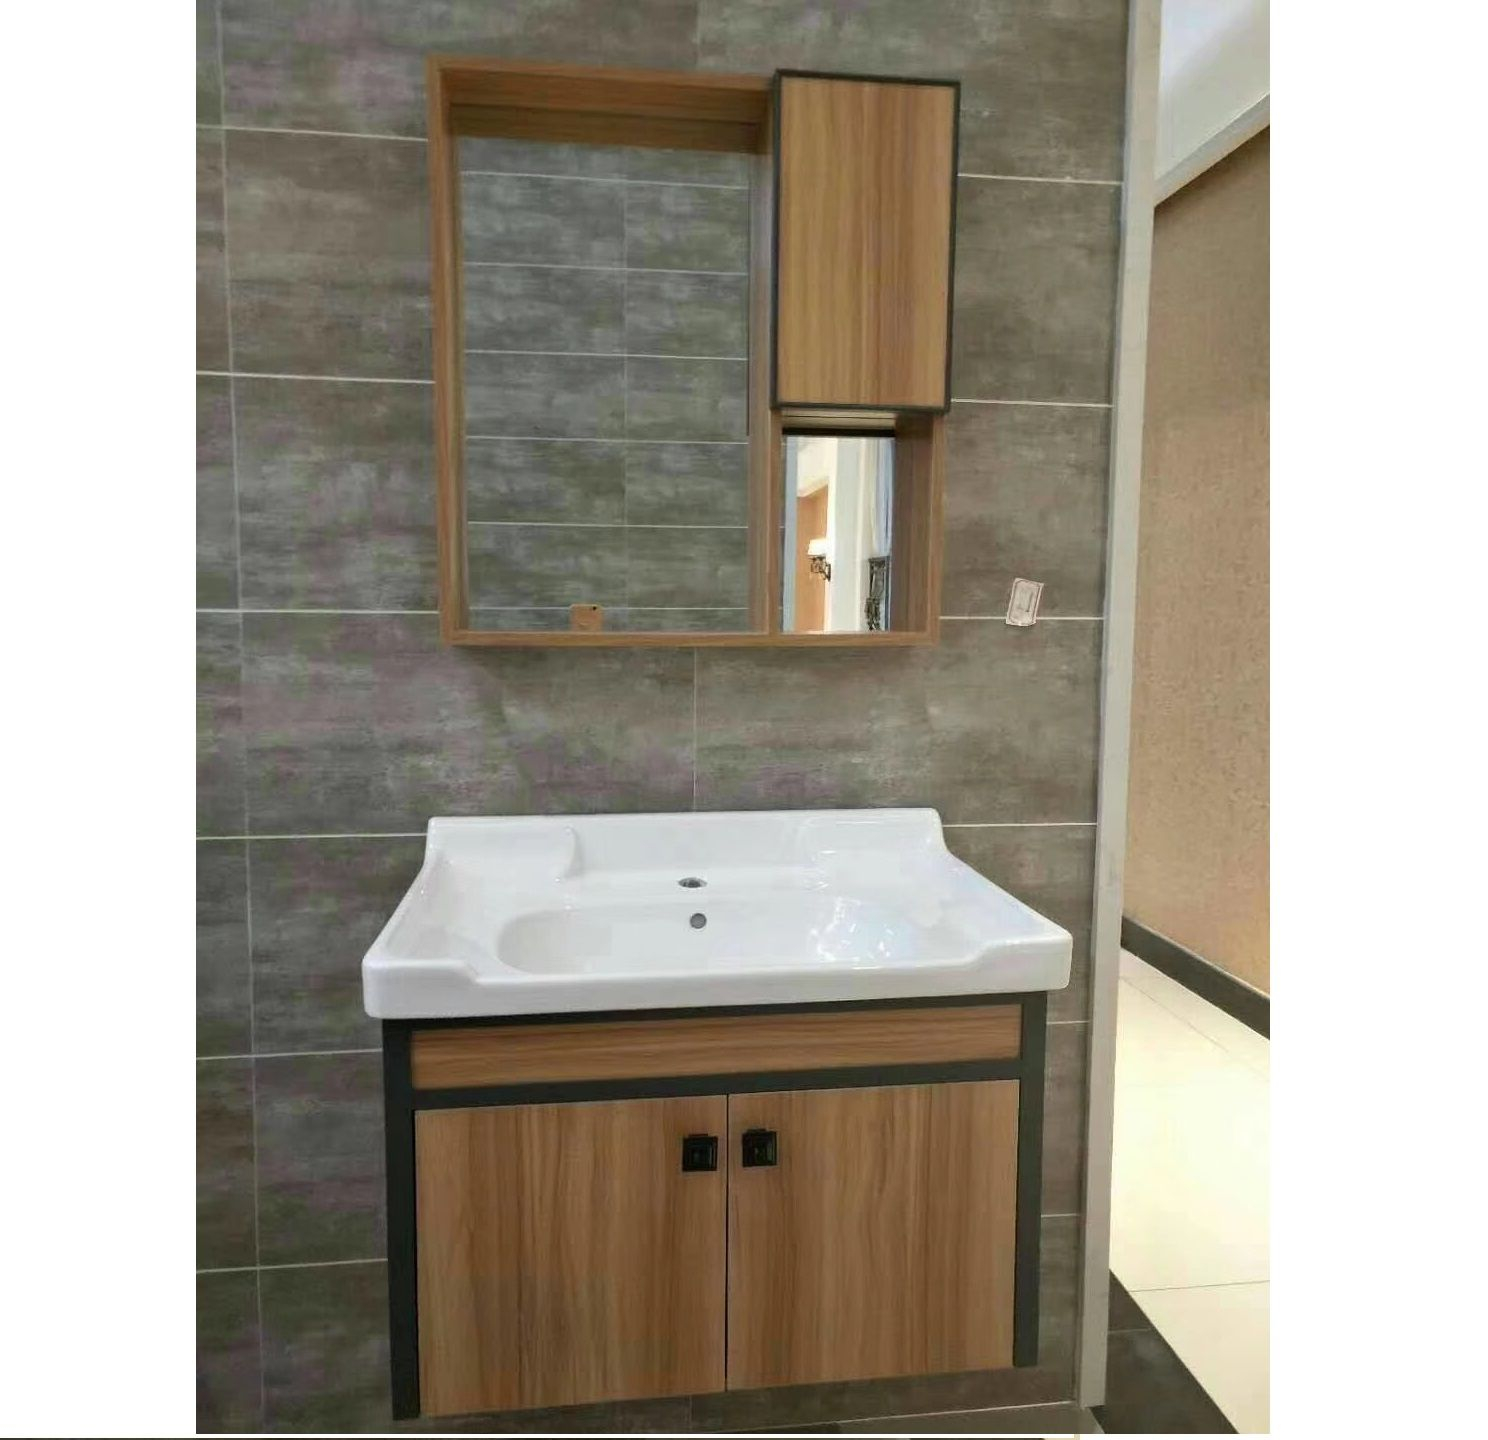 70cm Bathroom Storage Cabinet With Side Cabinet Wood Pattern regarding size 1488 X 1440